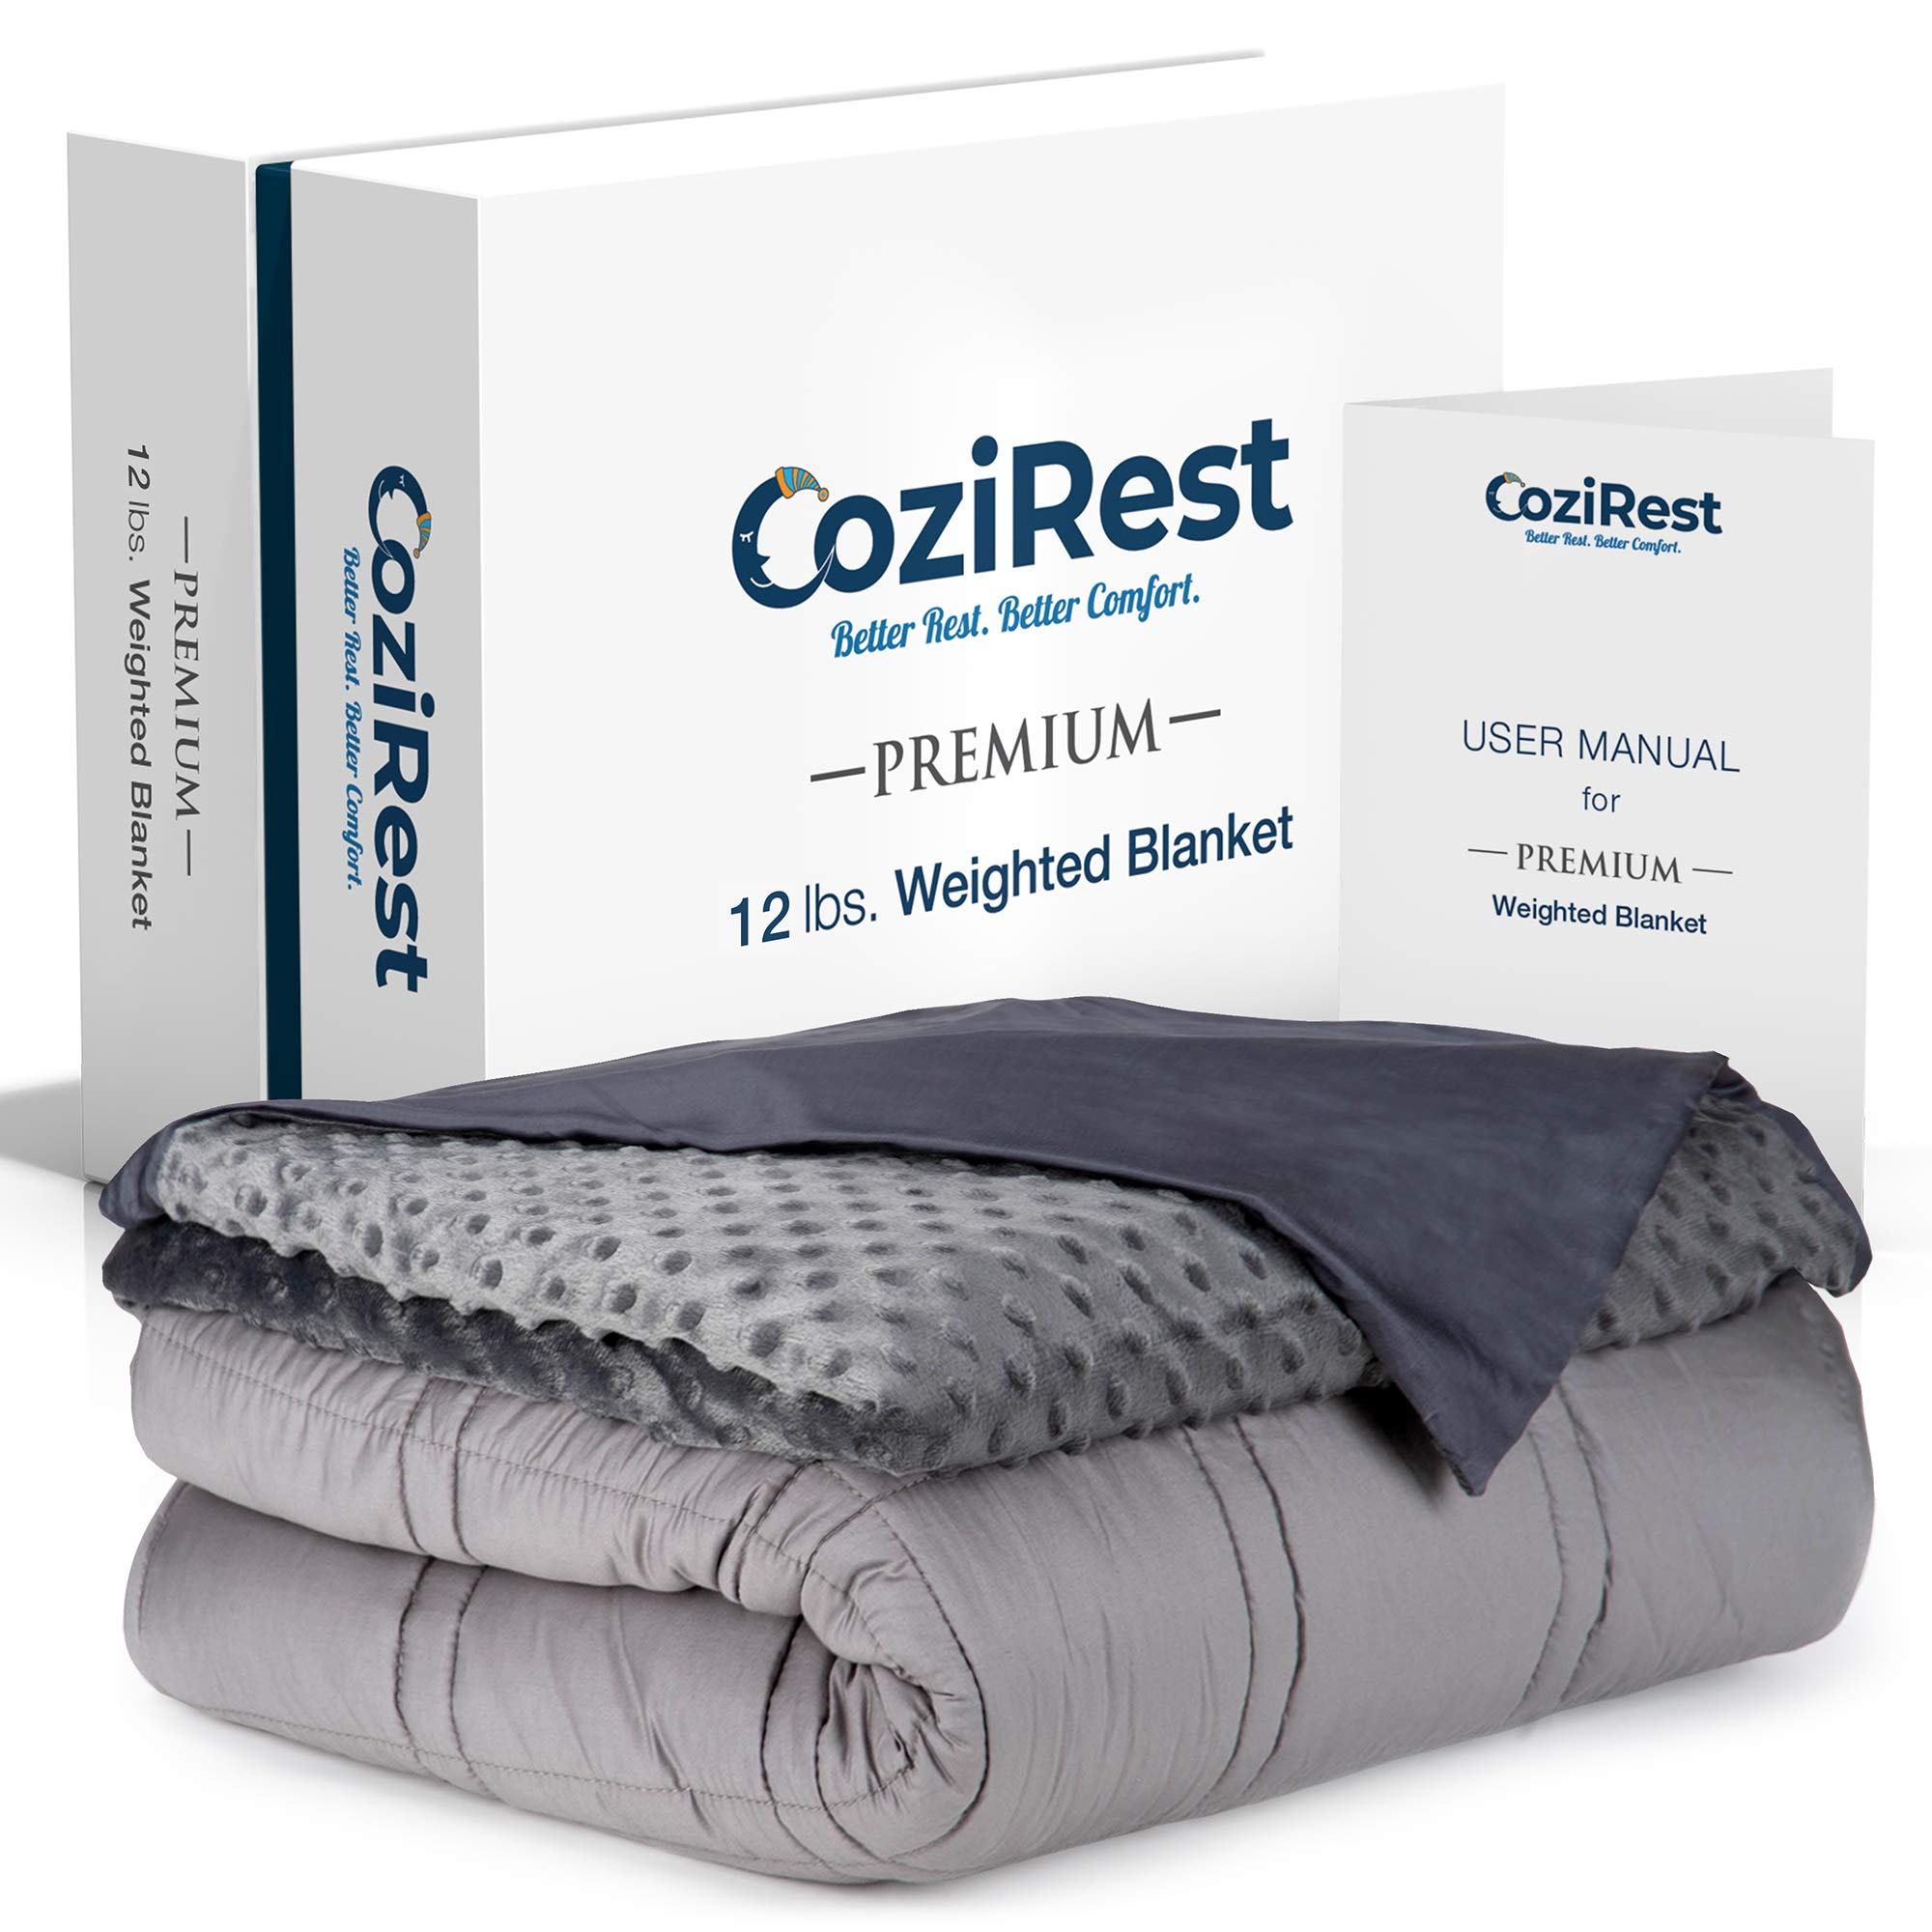 CoziRest Cooling Weighted Blanket | 12 lbs | 60x80 Queen Size | Cool Bamboo & Cozy Minky Dual-Sided Cover Included | Heavy Blanket for Adults and Kids from 110-140 lbs